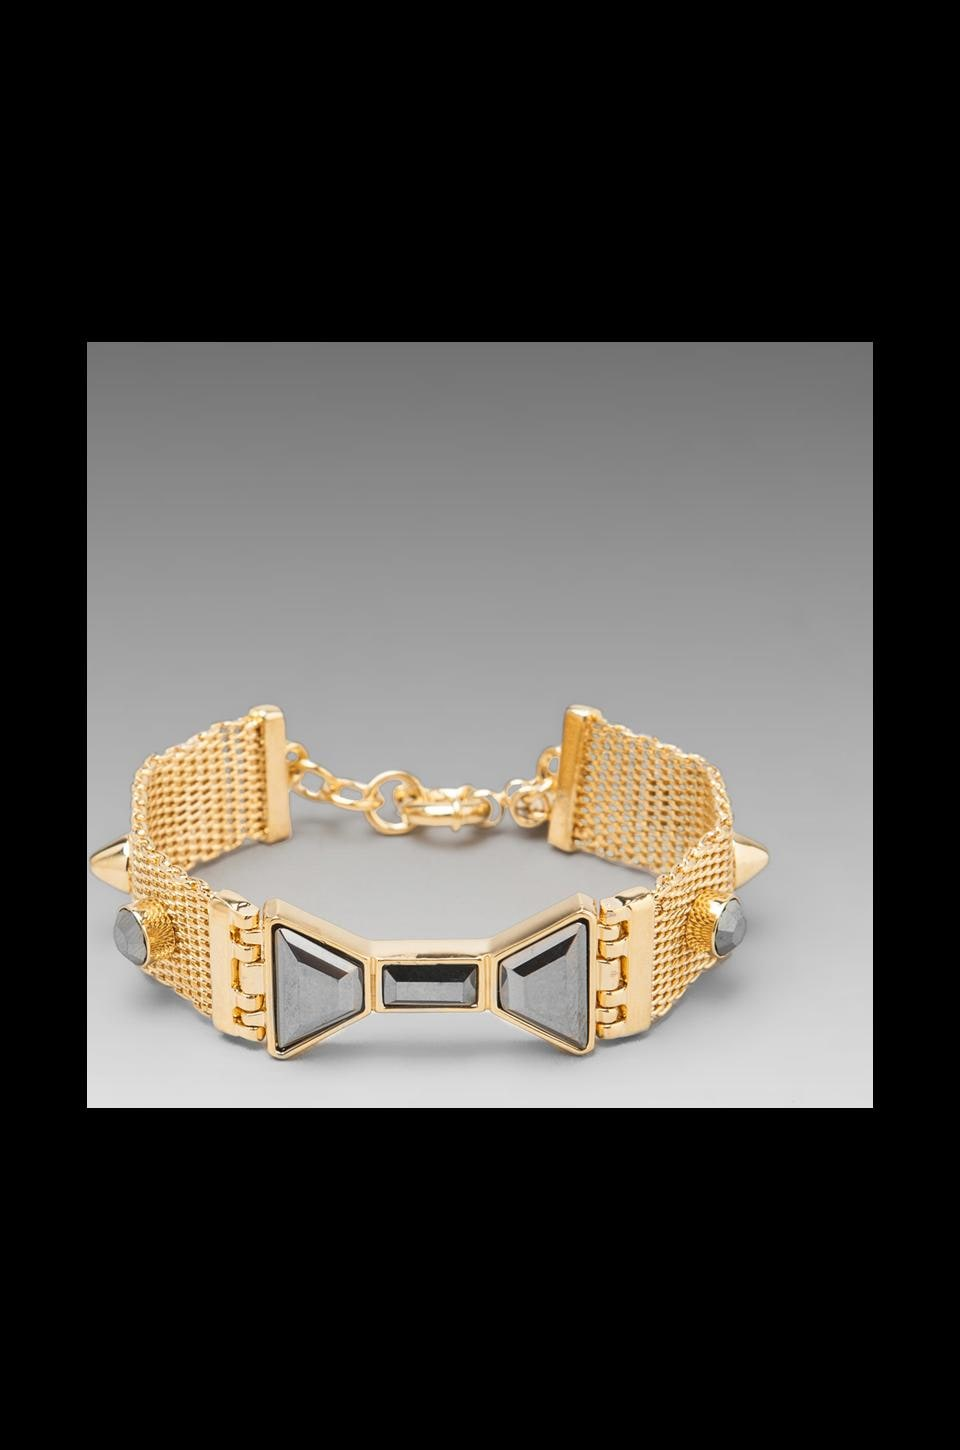 Marc by Marc Jacobs Polka Dot Bow ID Bracelet in Silver Flare Oro